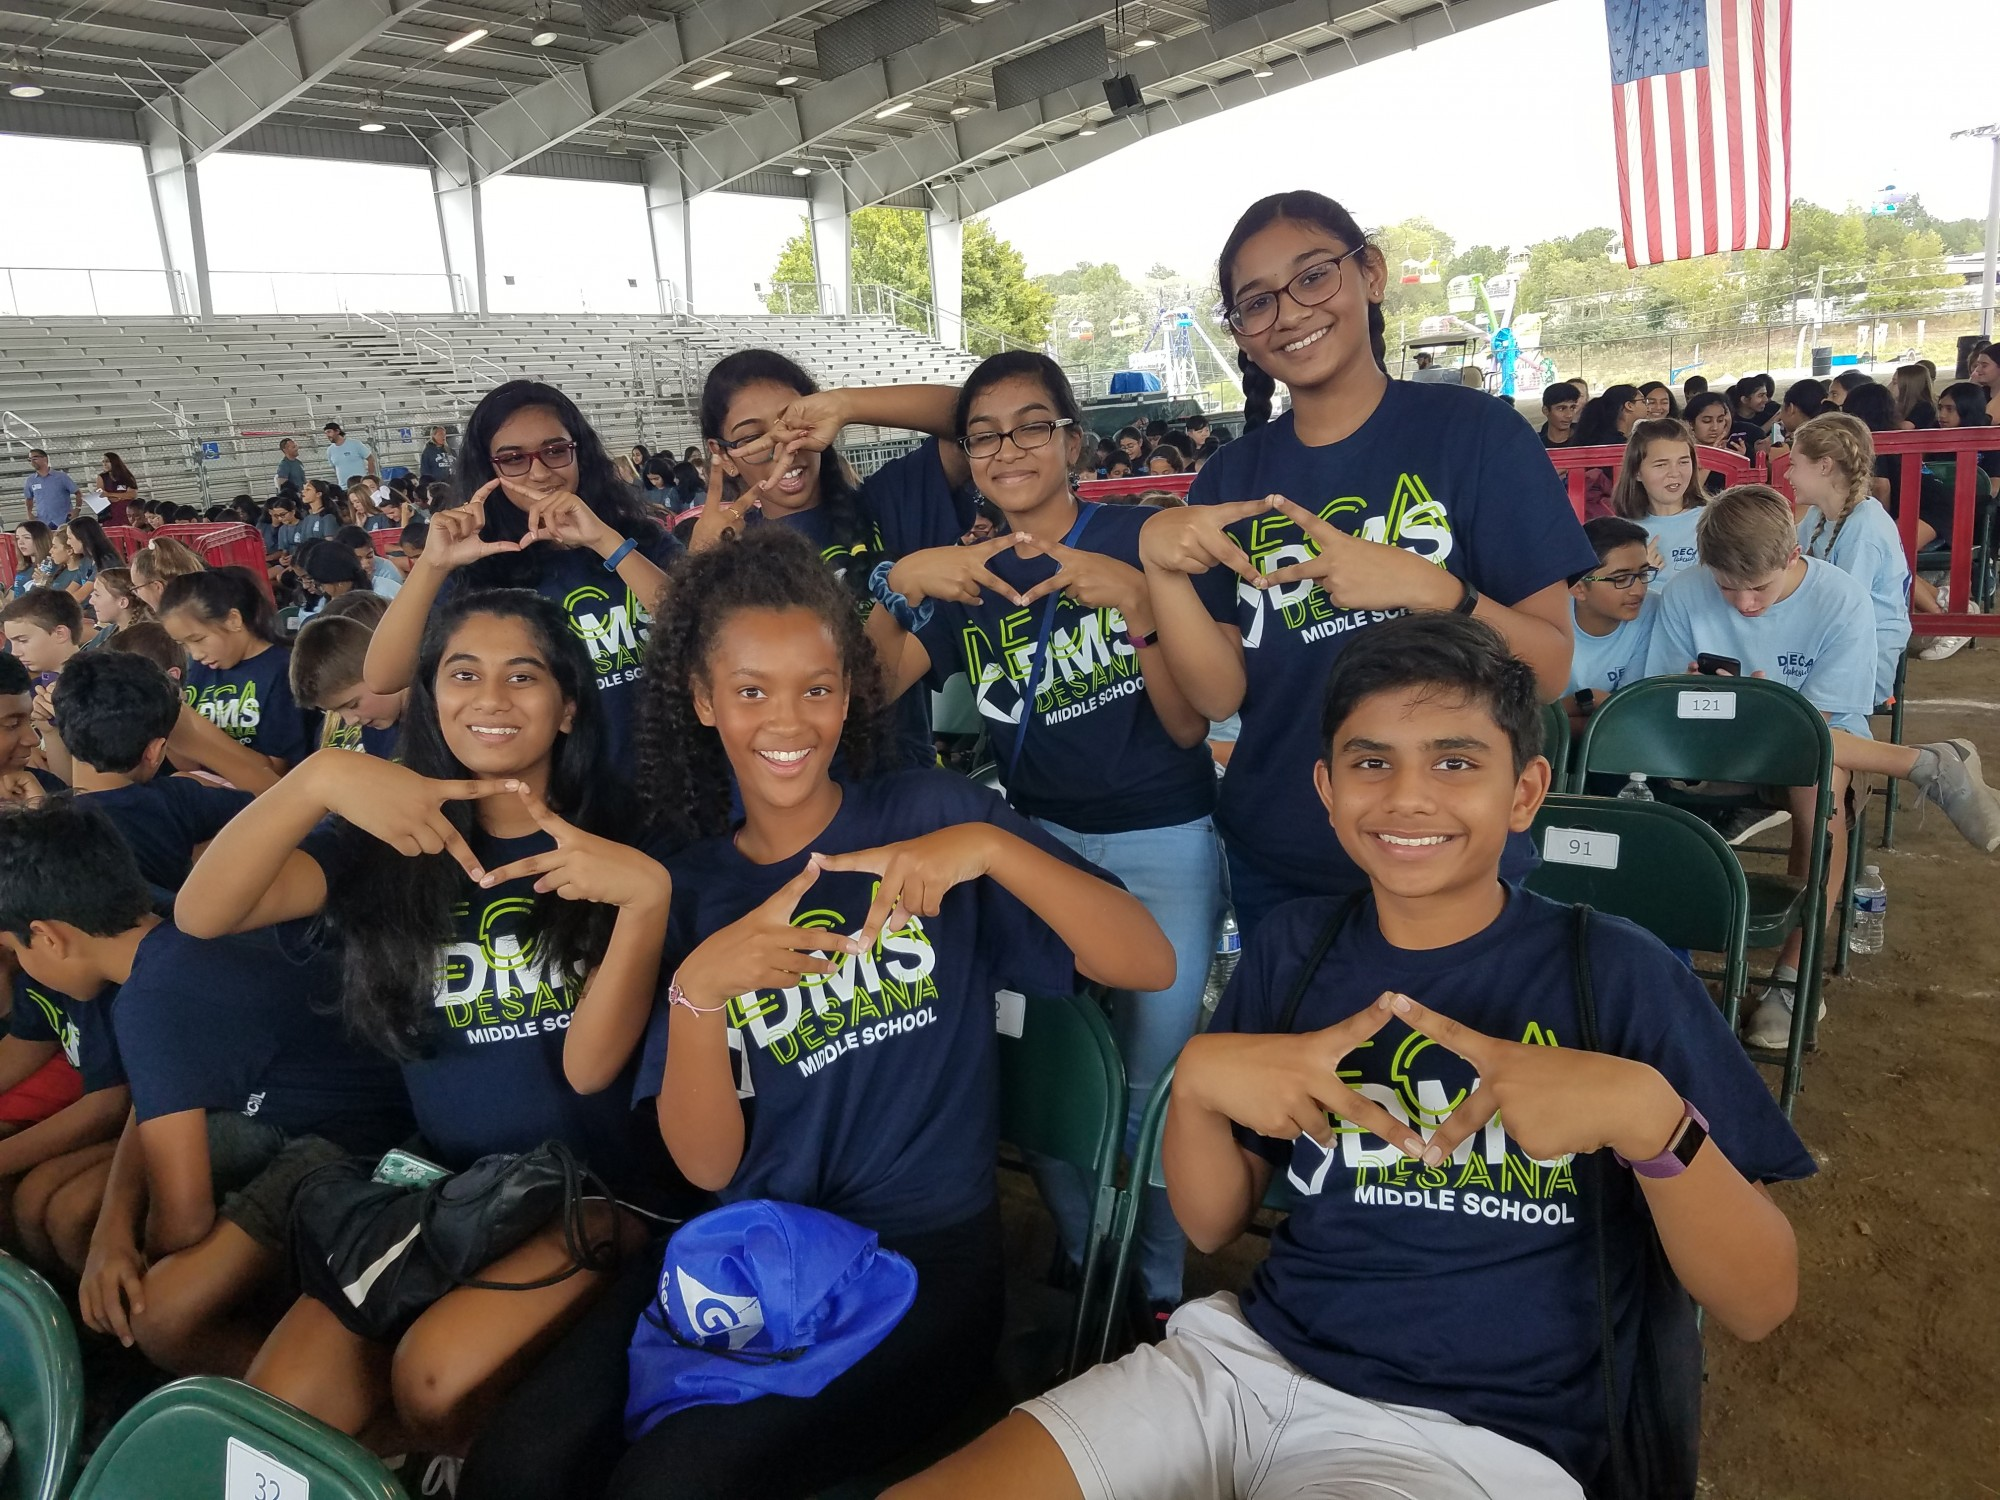 Forsyth County Middle School DECA Day at the Fair